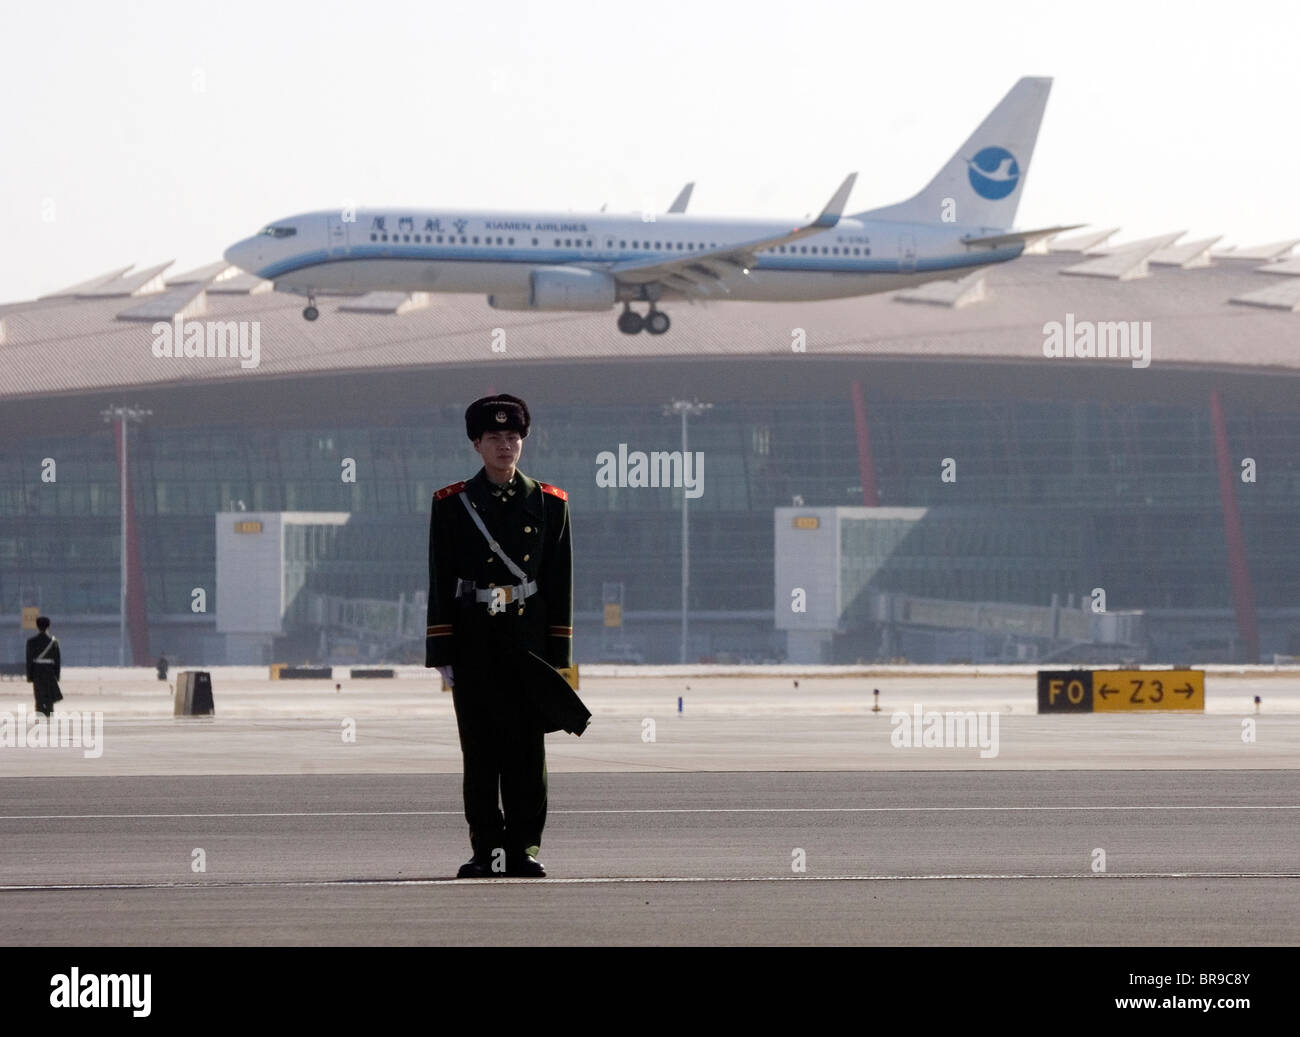 Soldier on tarmac in front of a landing plane at Beijing's new airport China. - Stock Image